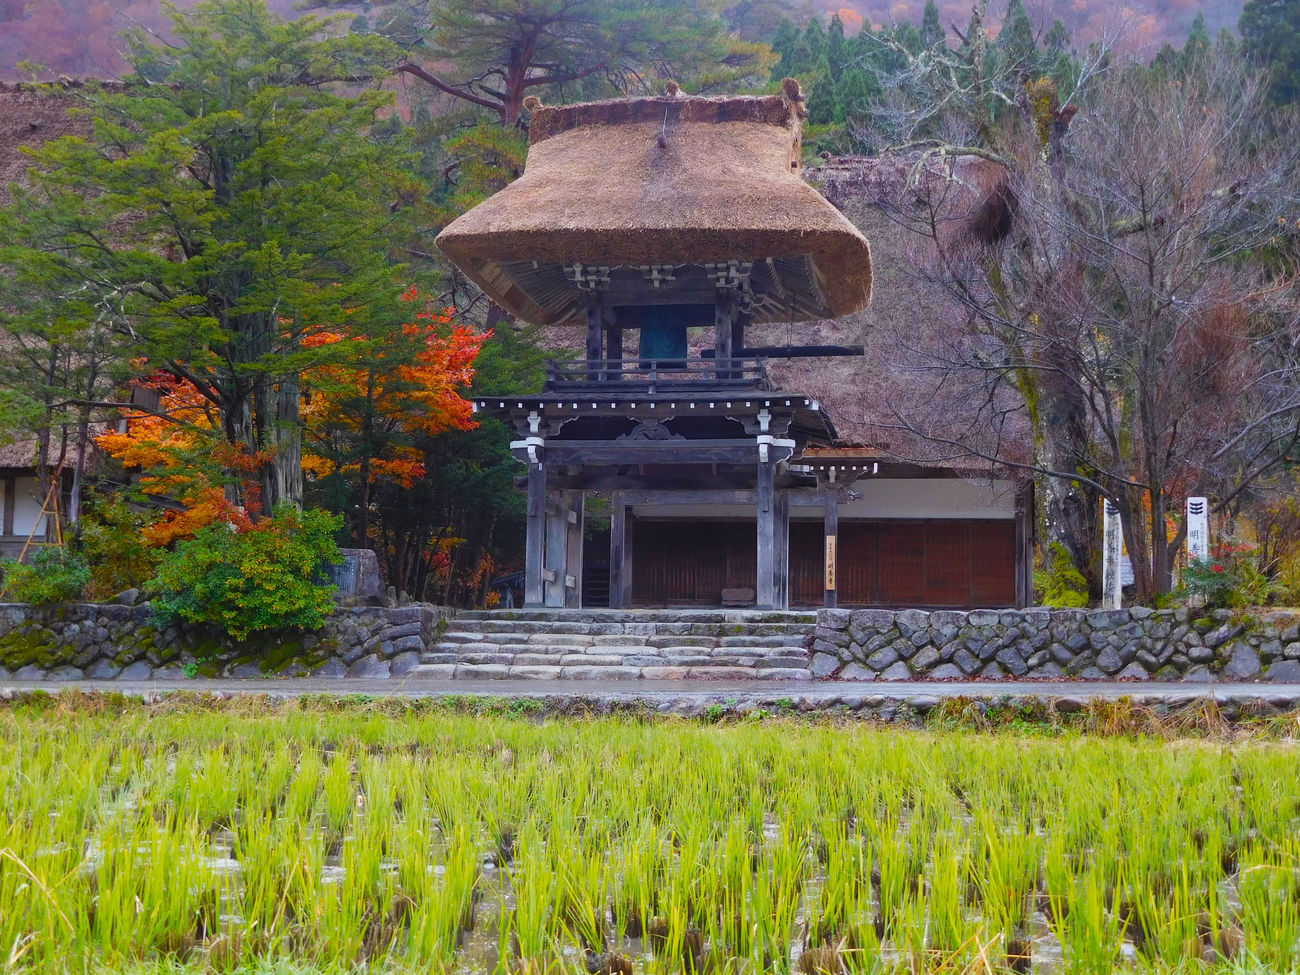 Architecture Beauty In Nature Building Exterior Built Structure Day Flower Gazebo Grass Growth Japan Japanese Garden Nature No People Ornamental Garden Outdoors Plant Shirakawago Gifu Tree Villages Water